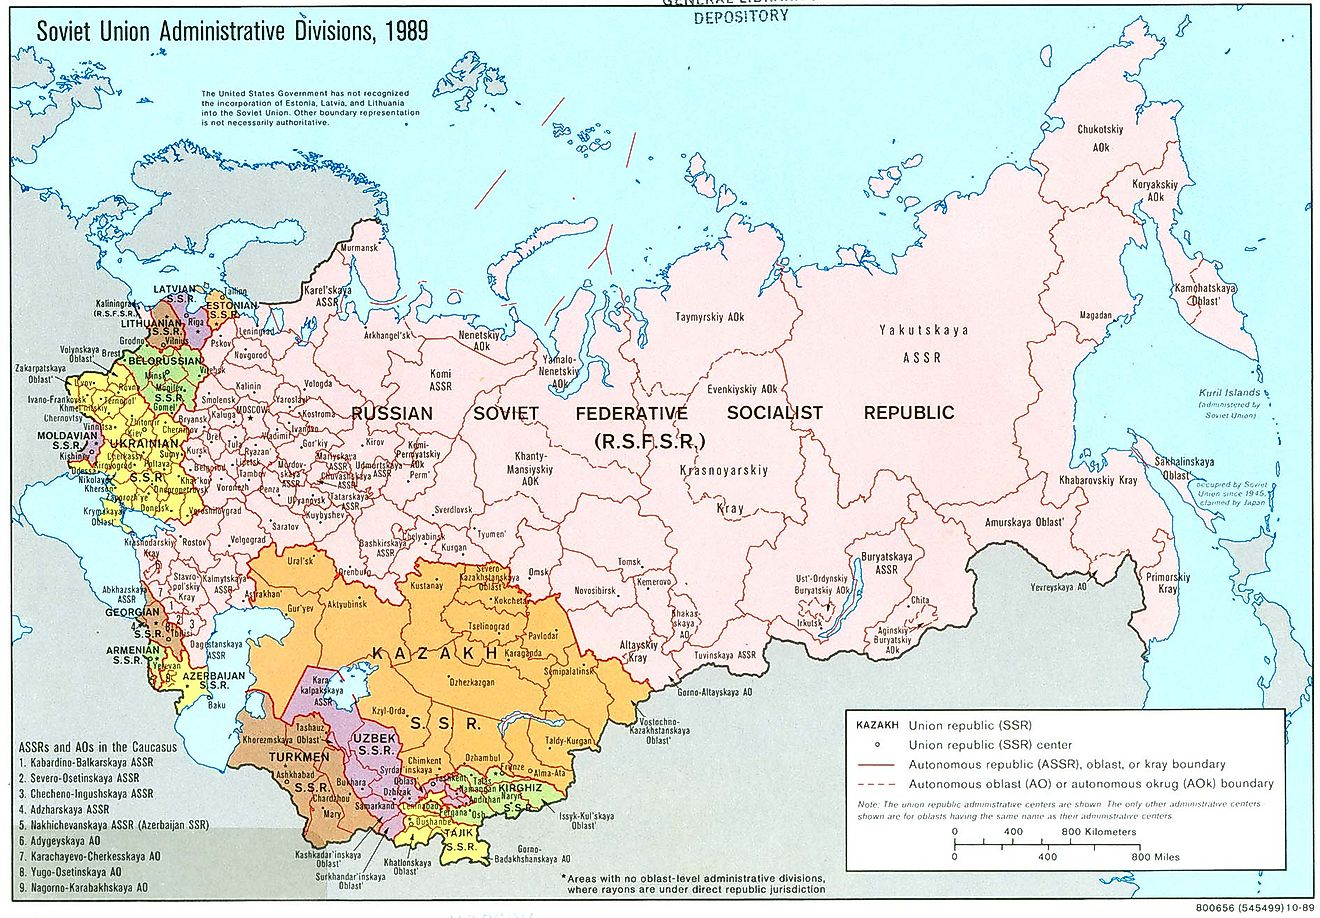 Administrative Divisions of the Soviet Union in 1989.